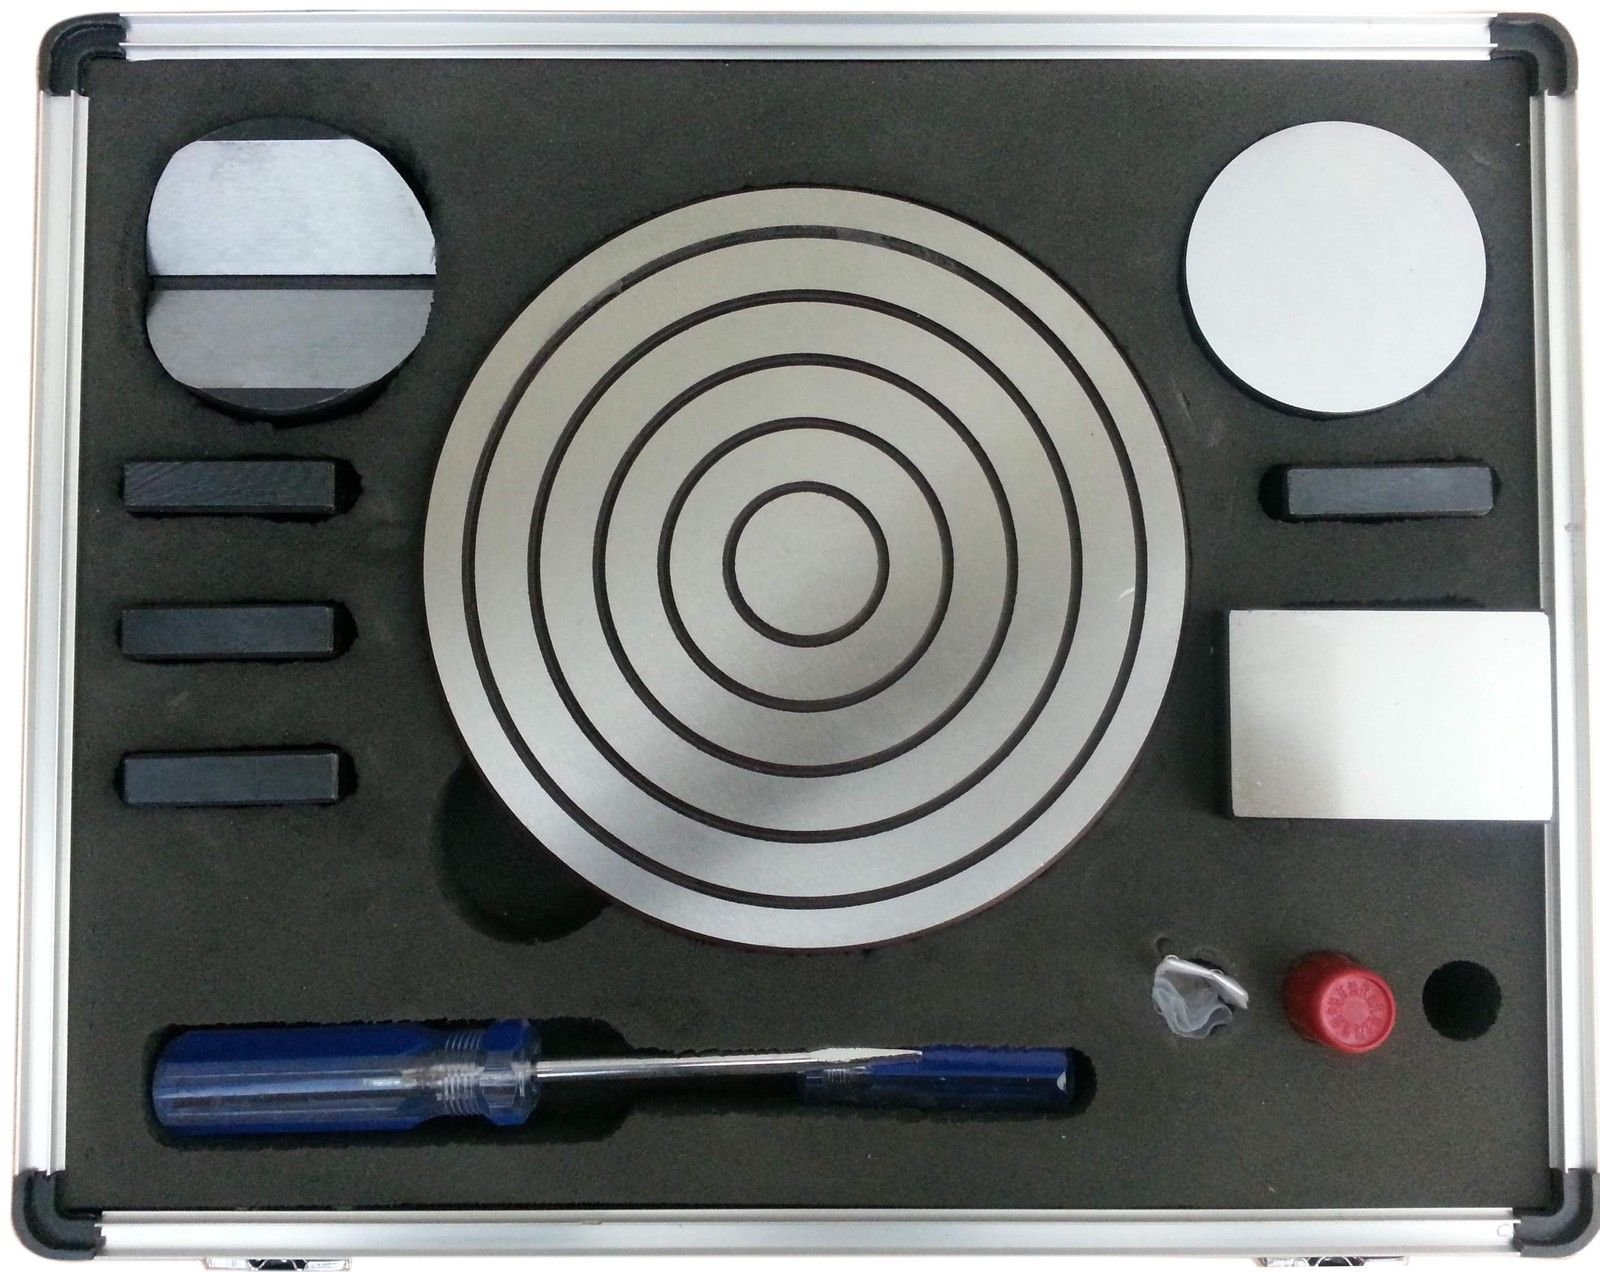 AccusizeTools - 3R Type Rockwell Type Hardness Tester HR150A with Accessories In Box, #RT90-0330 by Accusize Industrial Tools (Image #3)